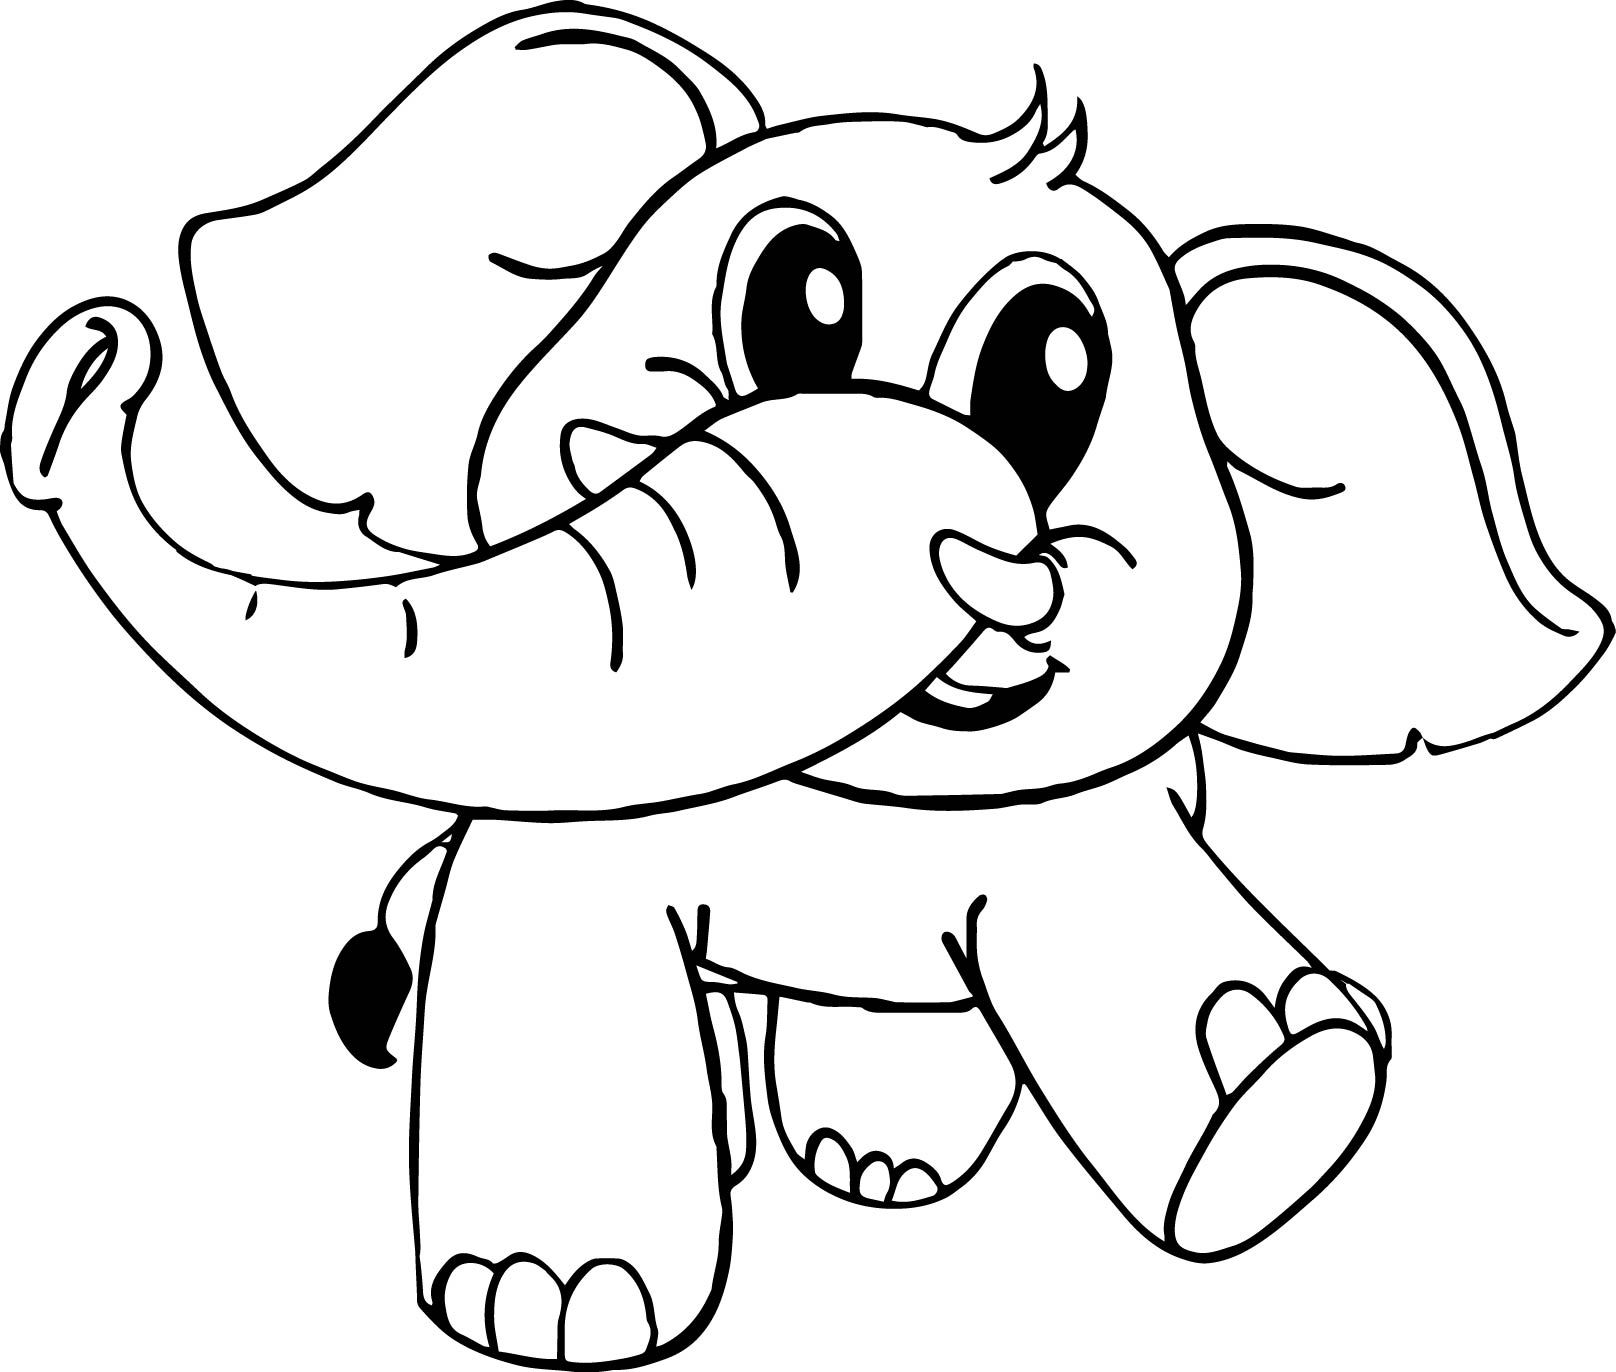 17++ Cute elephant coloring pictures ideas in 2021